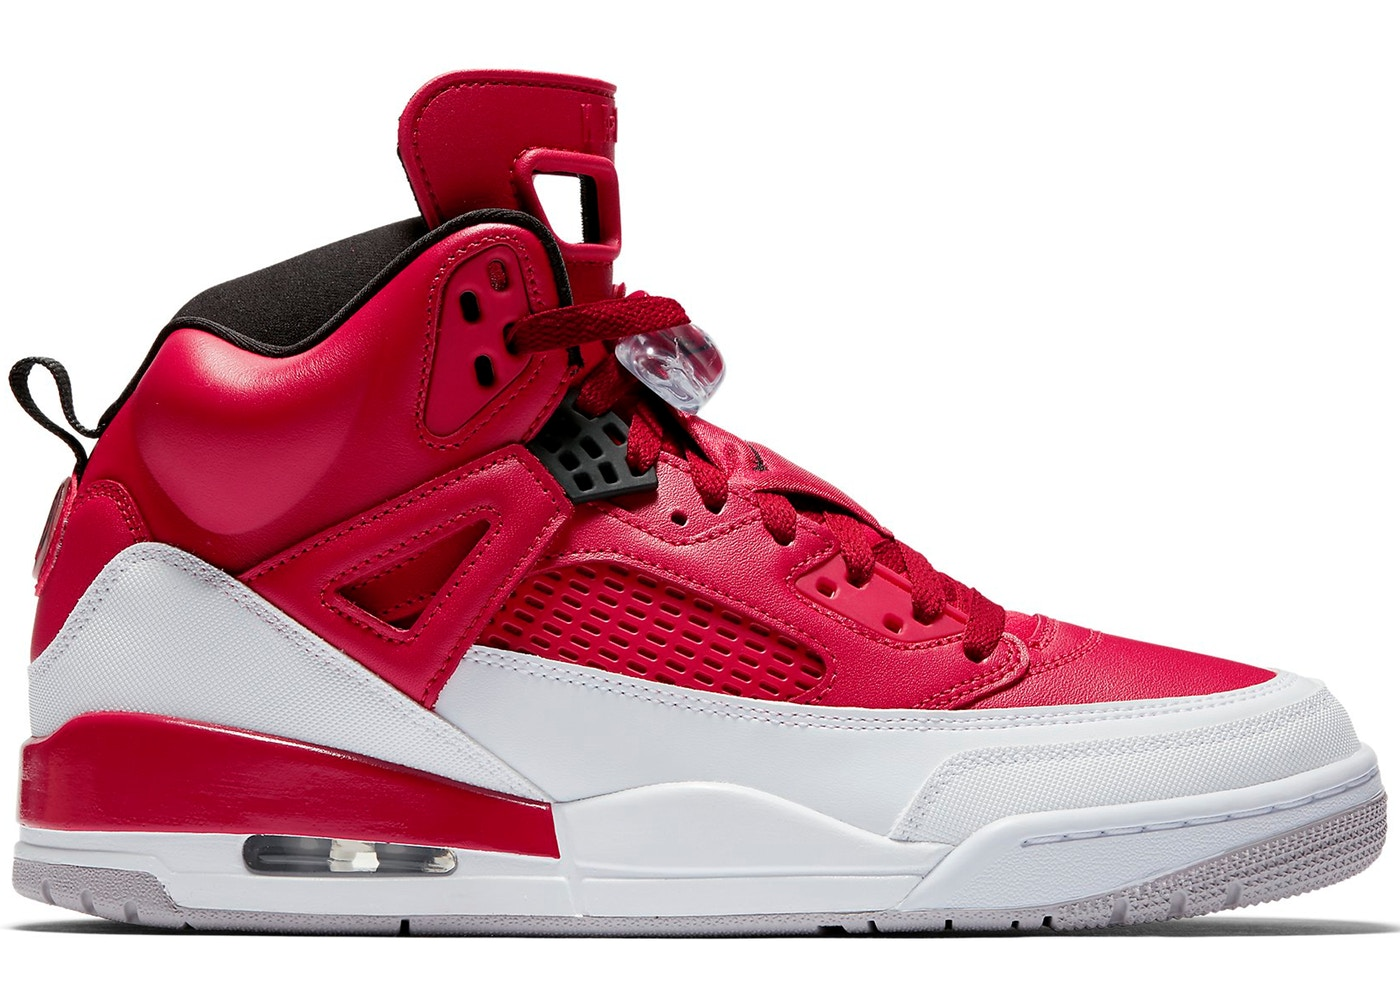 Jordan Spizike Gym Red - 315371-603 cb5b6dd49